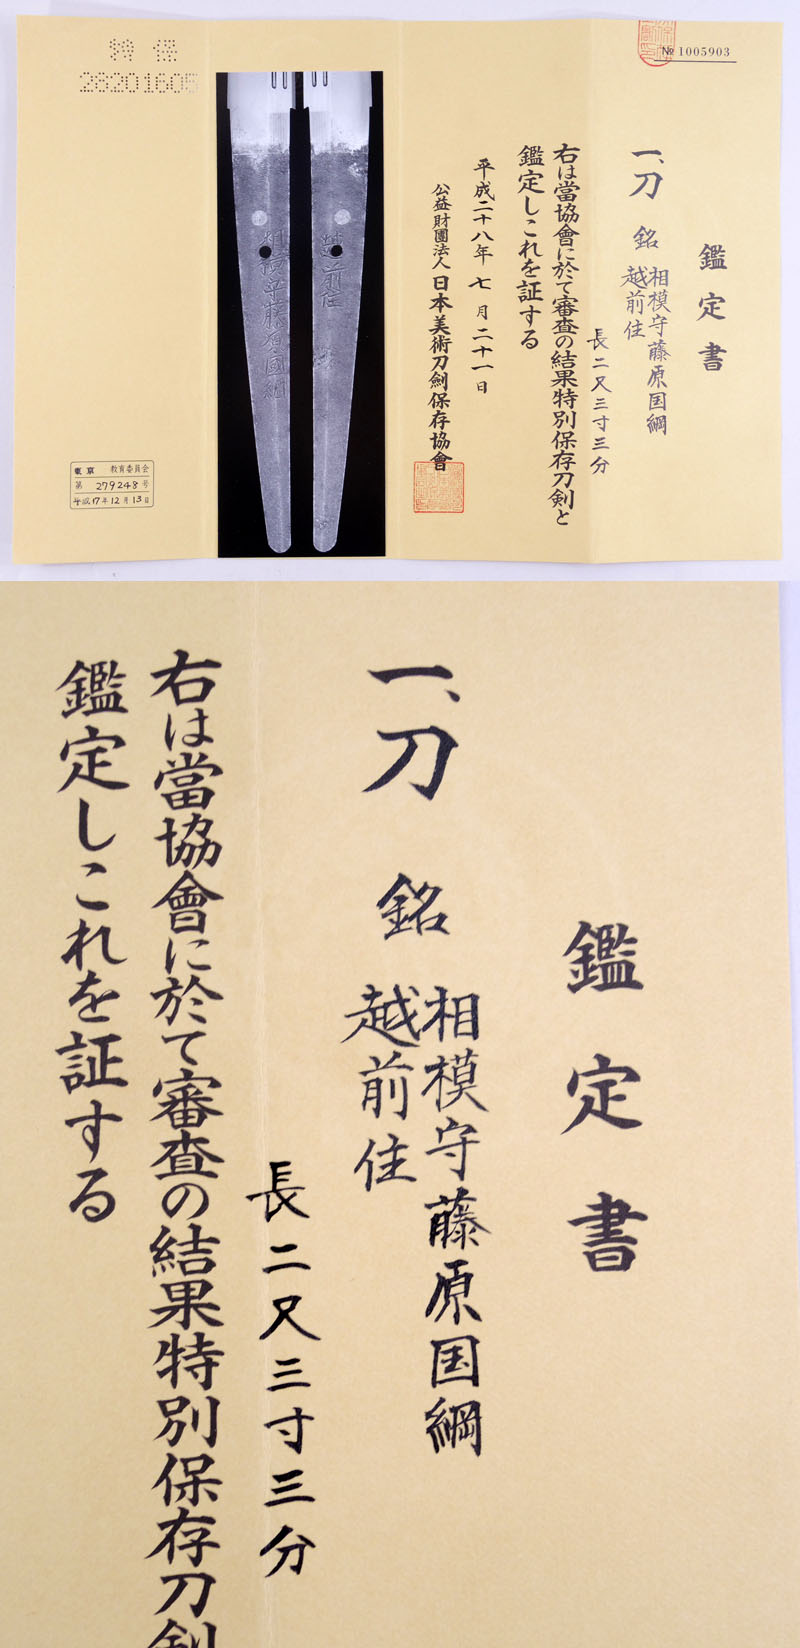 相模守藤原国綱 Picture of Certificate